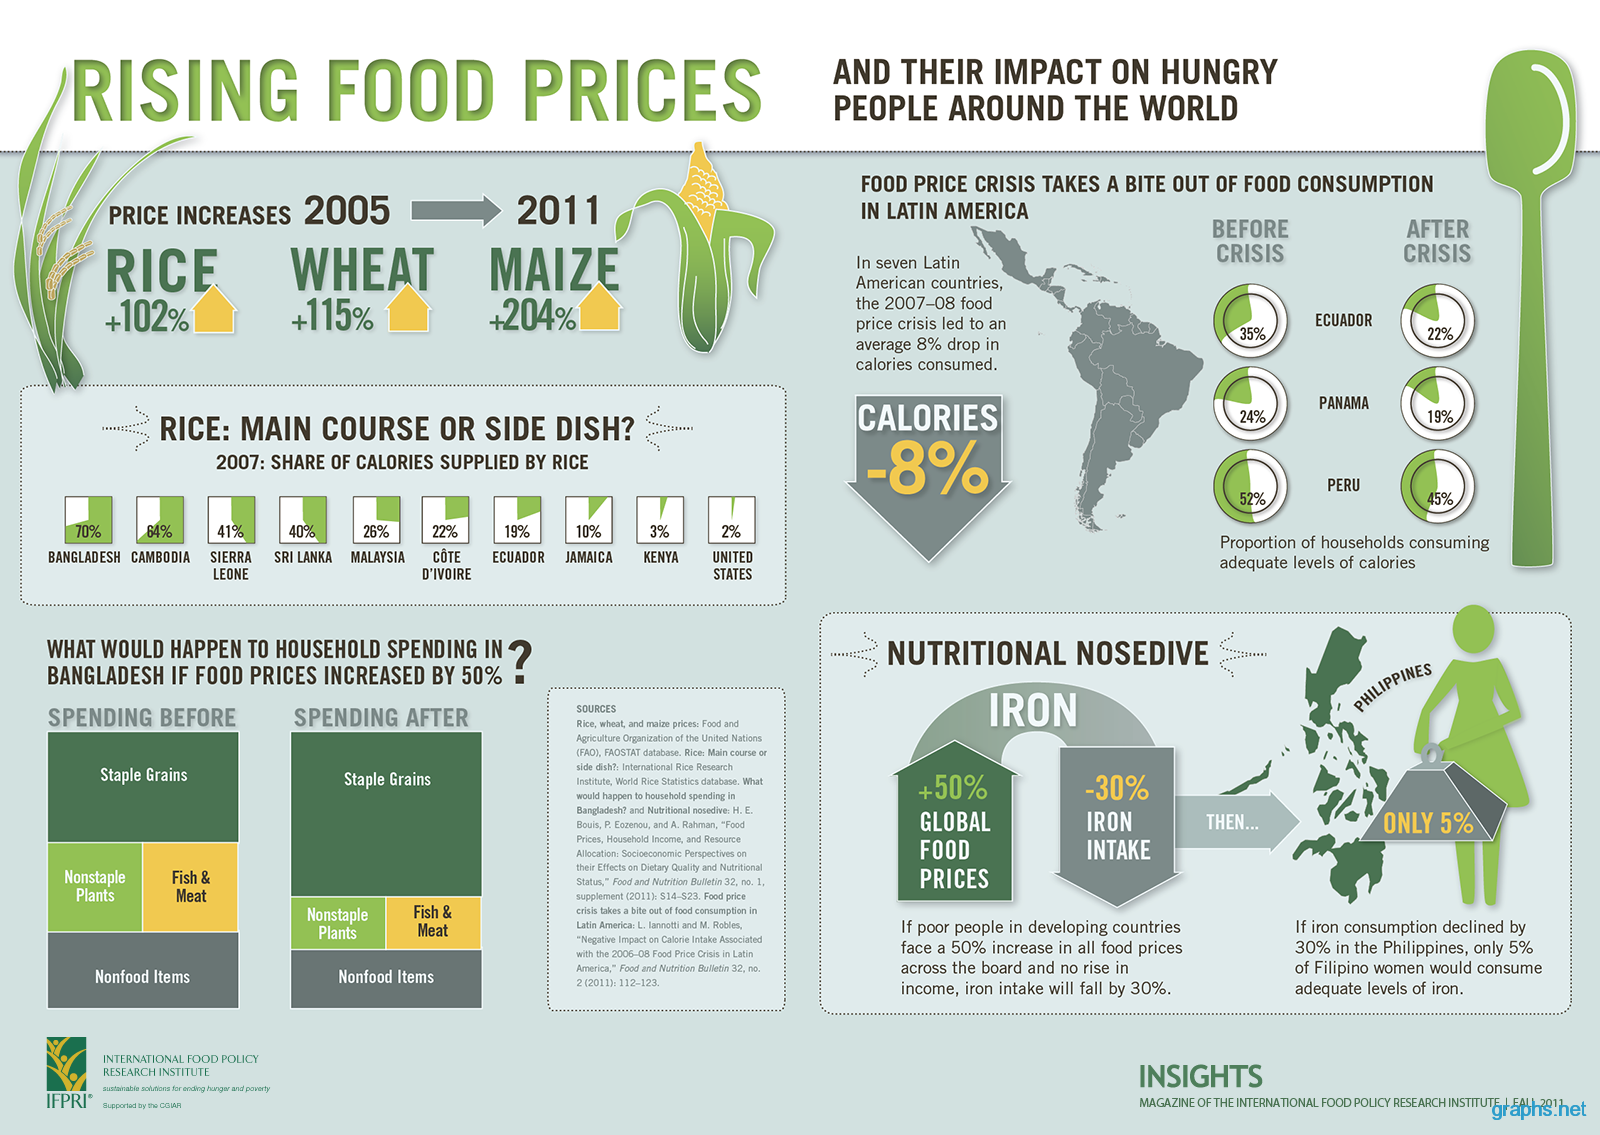 Impact of Rising Food Prices on the Poor